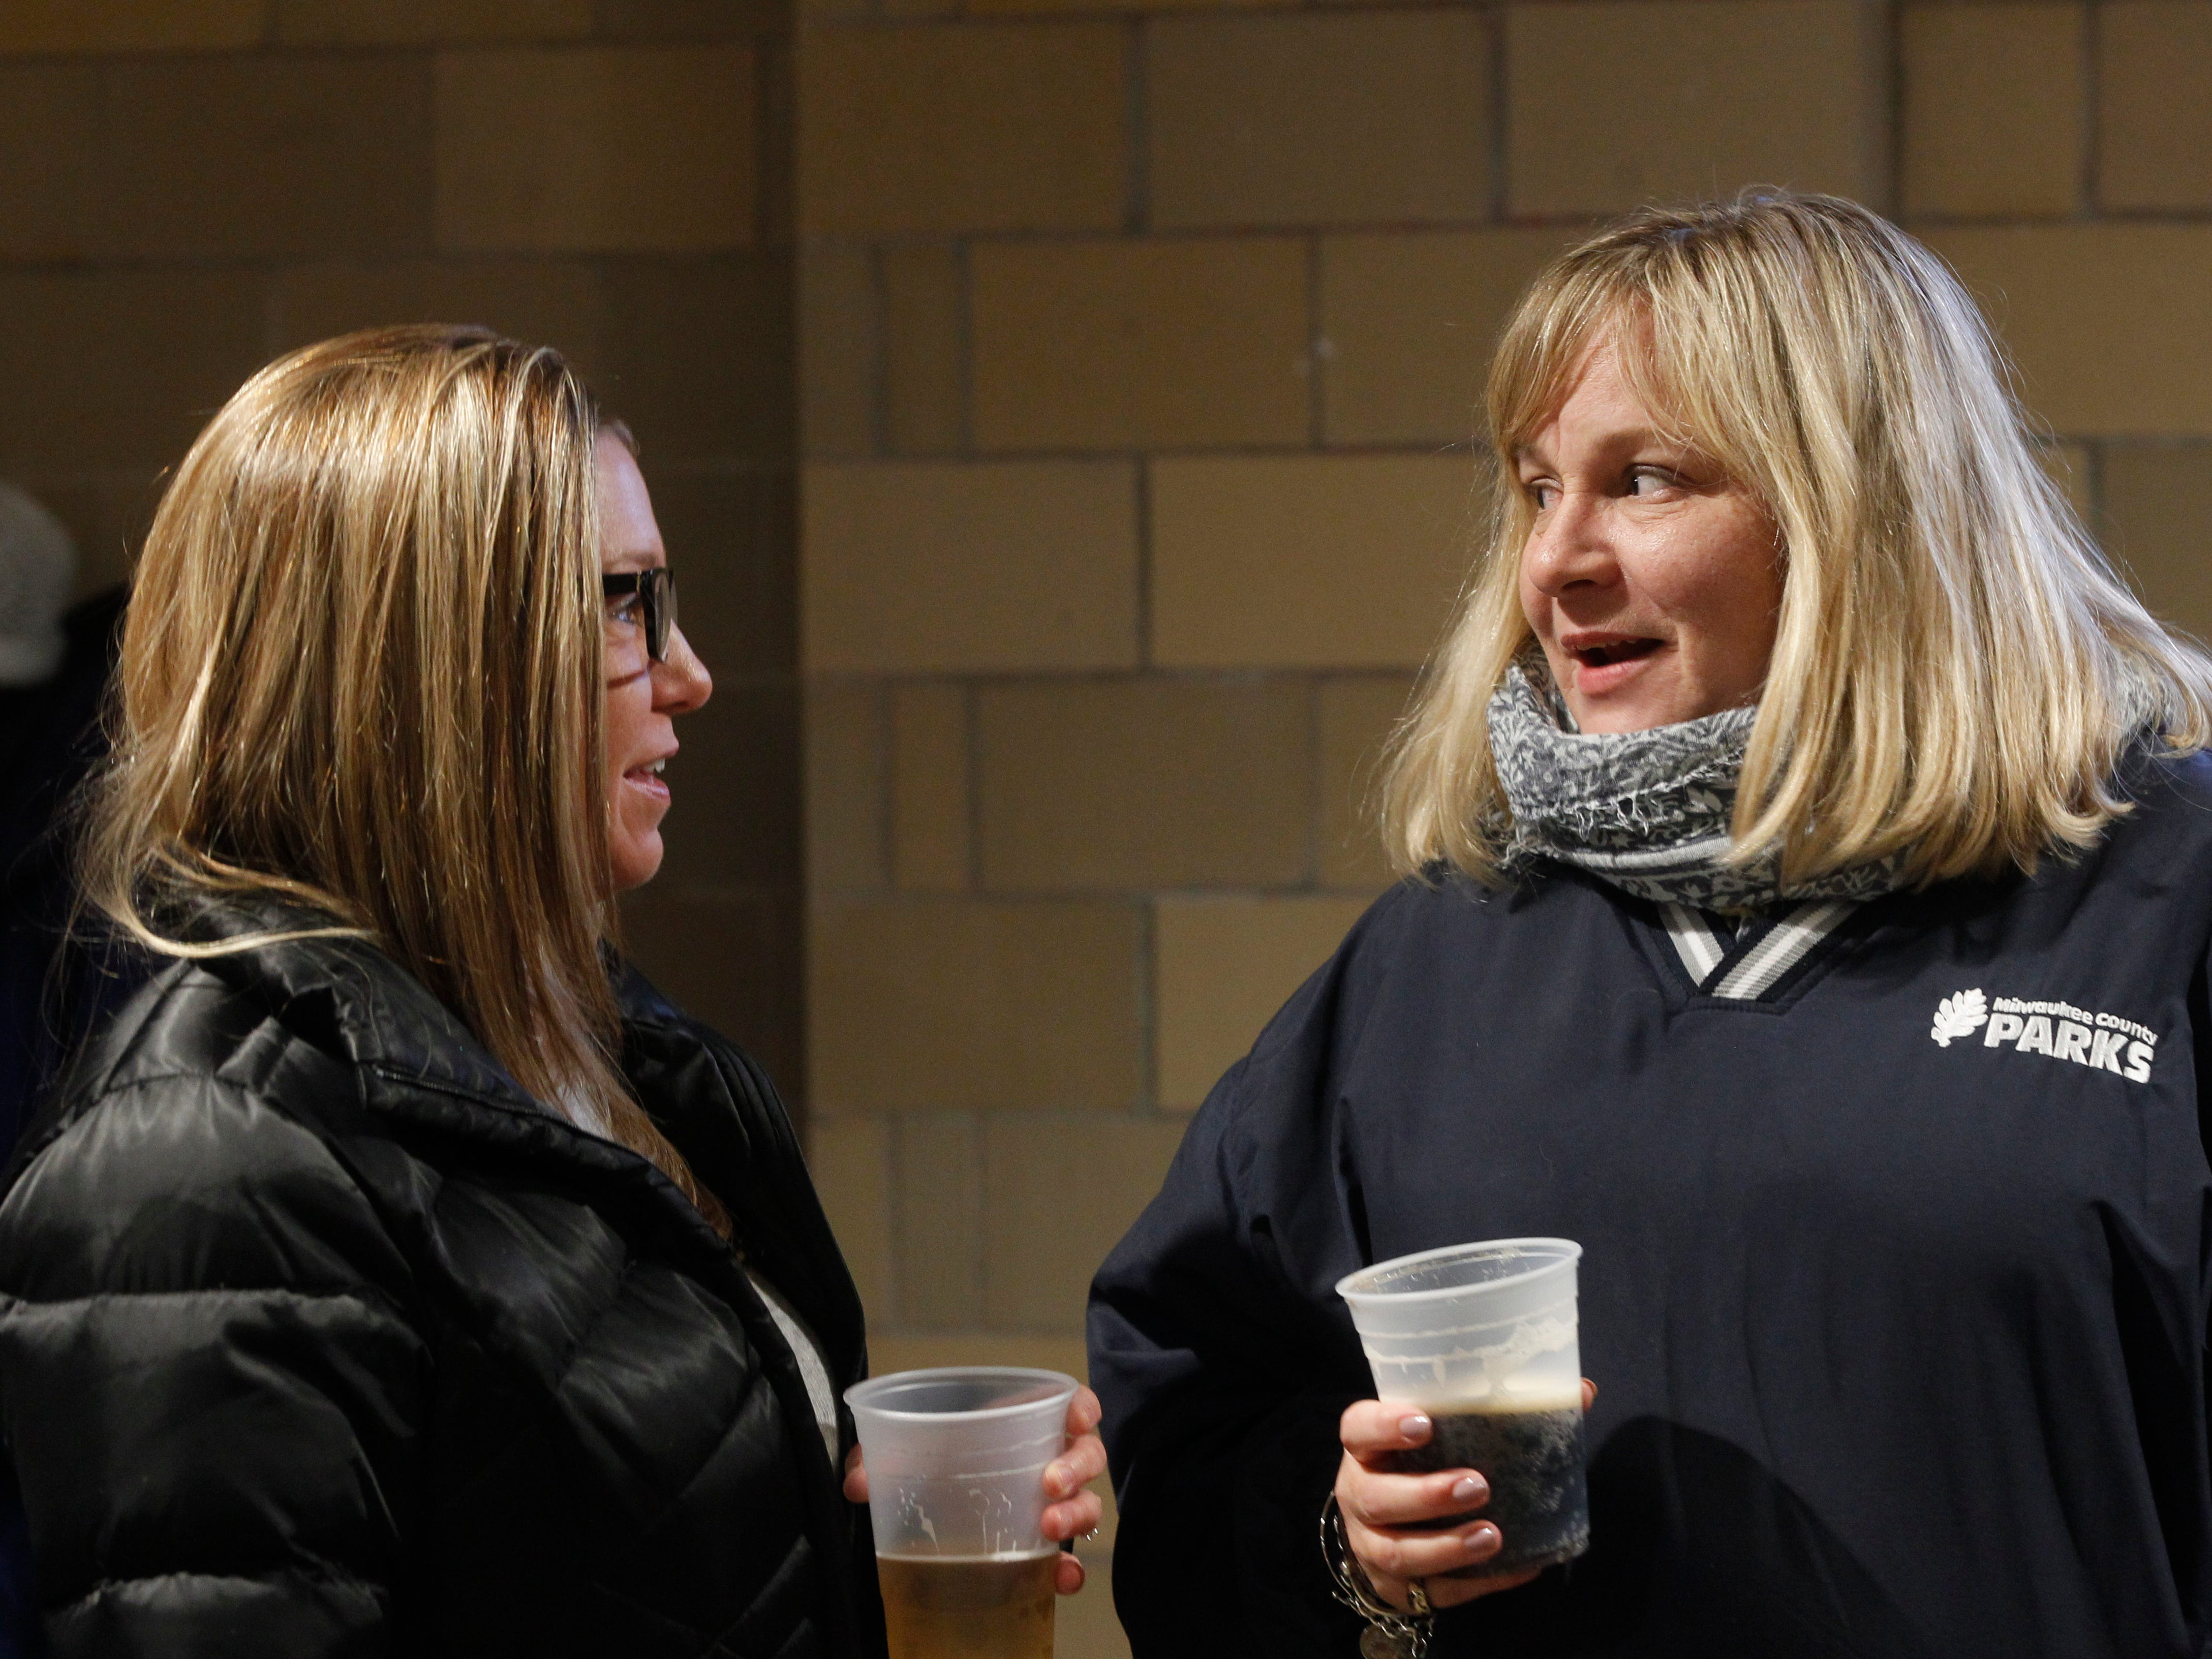 Michelle Smith (left) and Paula Johnson, talk while waiting in the food line at  South Shore Terrace on Wednesday.